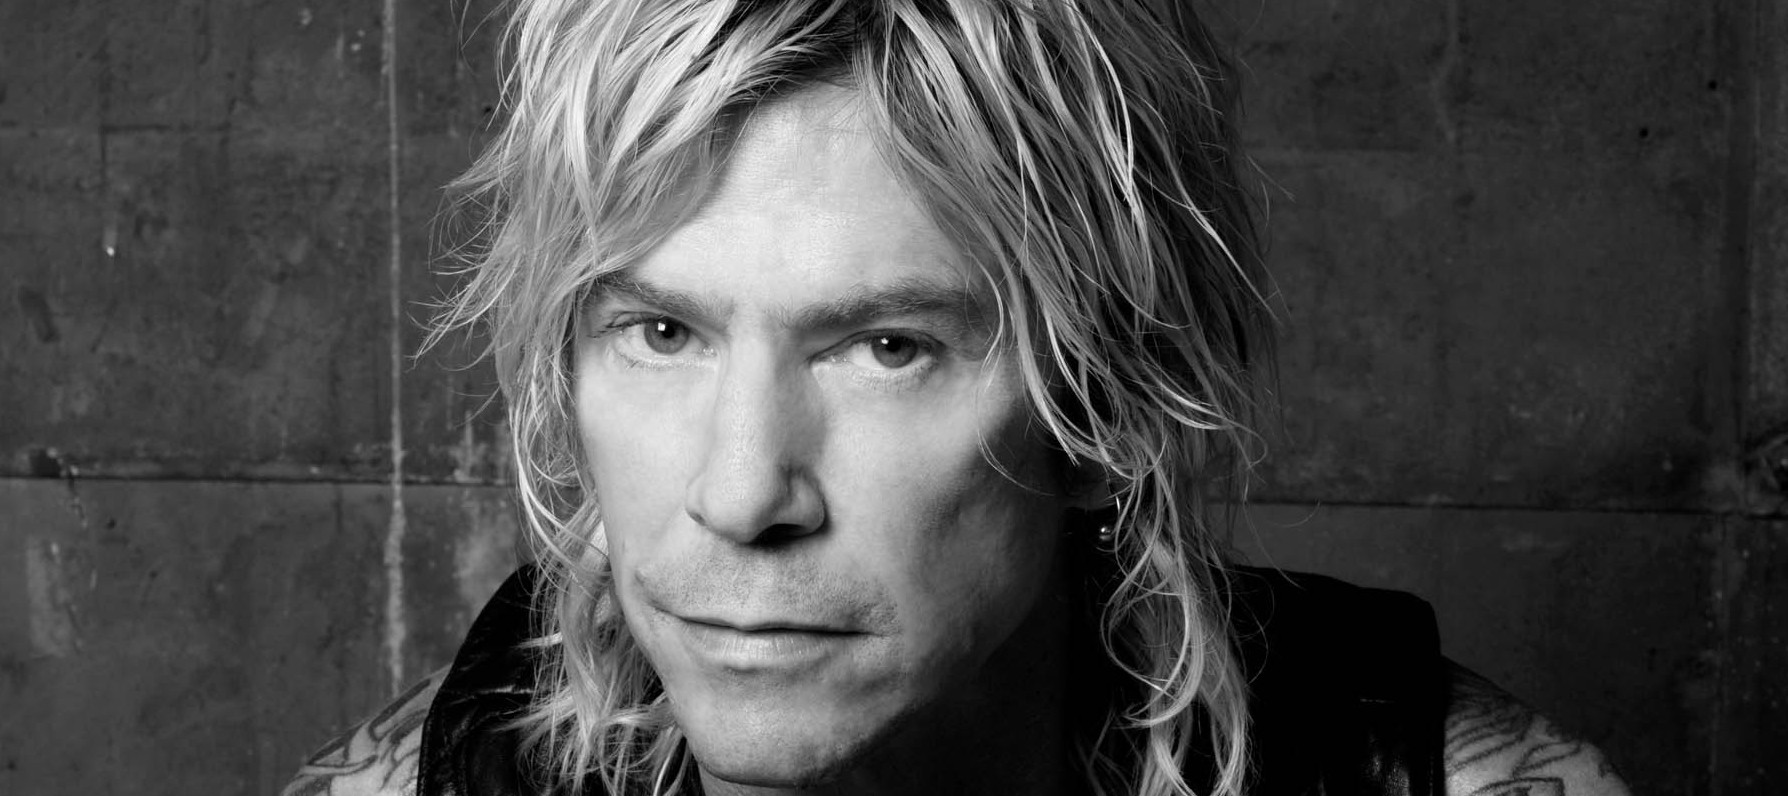 Duff McKagan: It's So Easy and Other Lies